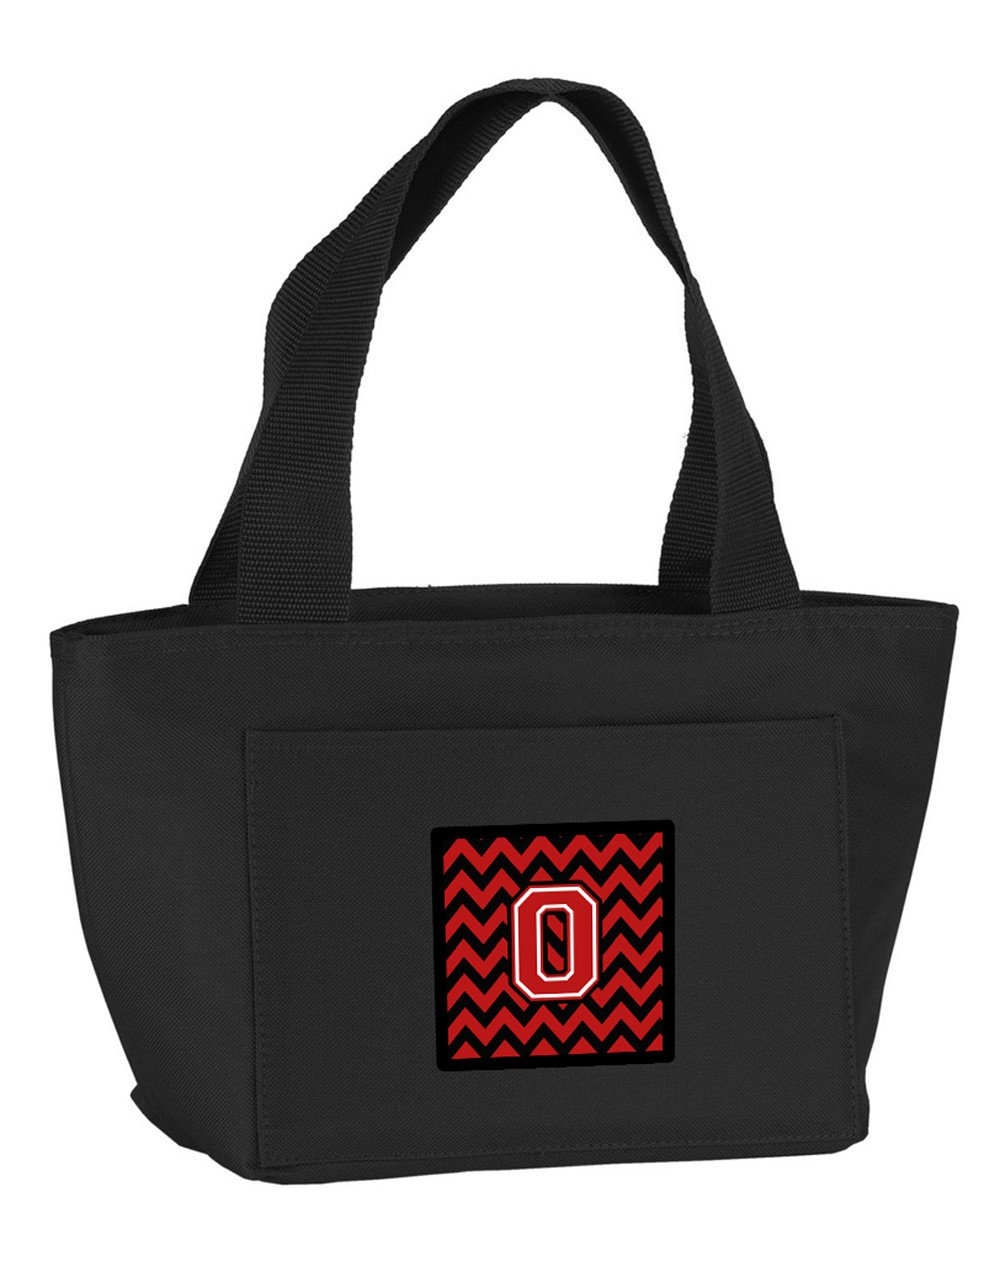 Letter O Chevron Black and Red   Lunch Bag CJ1047-OBK-8808 by Caroline's Treasures